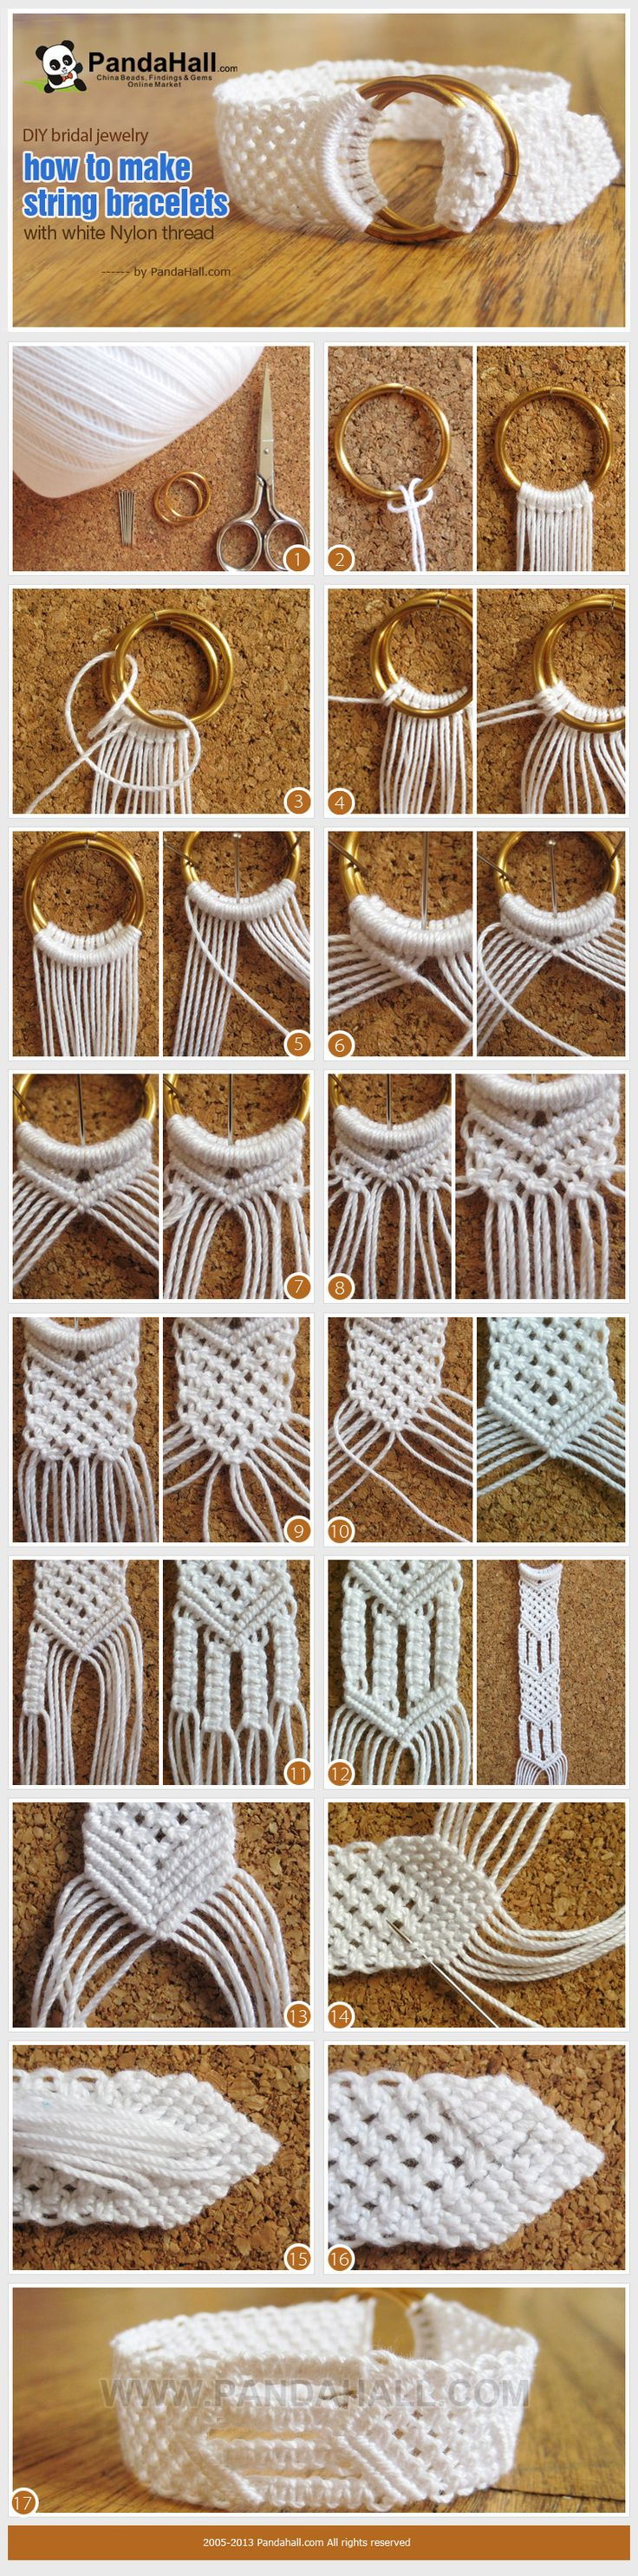 An awesome project for DIY bridal jewelry out of white threads only; no matter make it for you own or give as gift, learn this how to make string bracelets can be fit rightly.